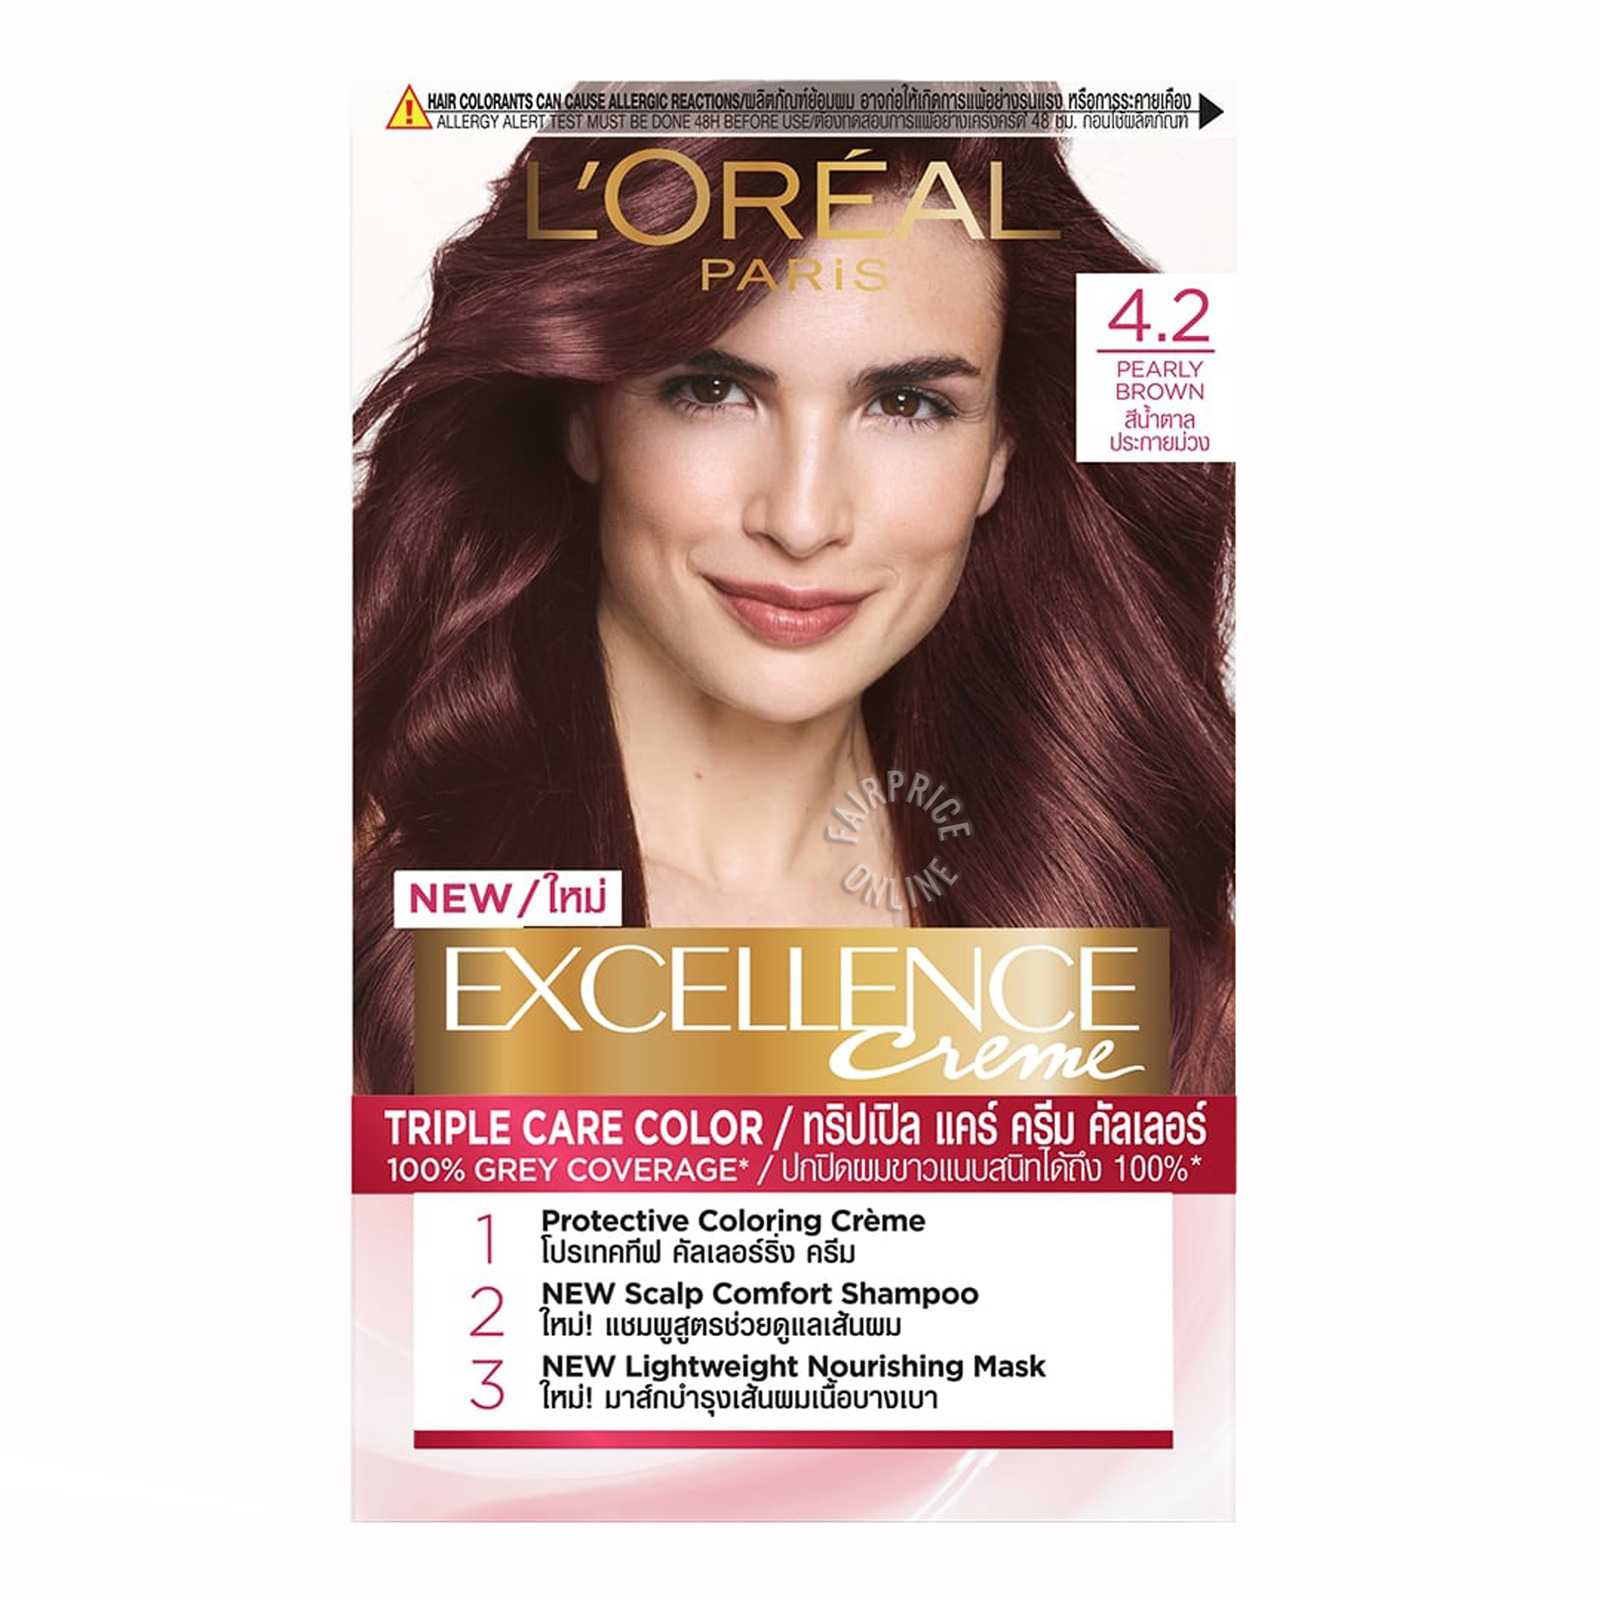 L'Oreal Paris Excellence Creme Hair Dye - 4.2 Pearly Brown